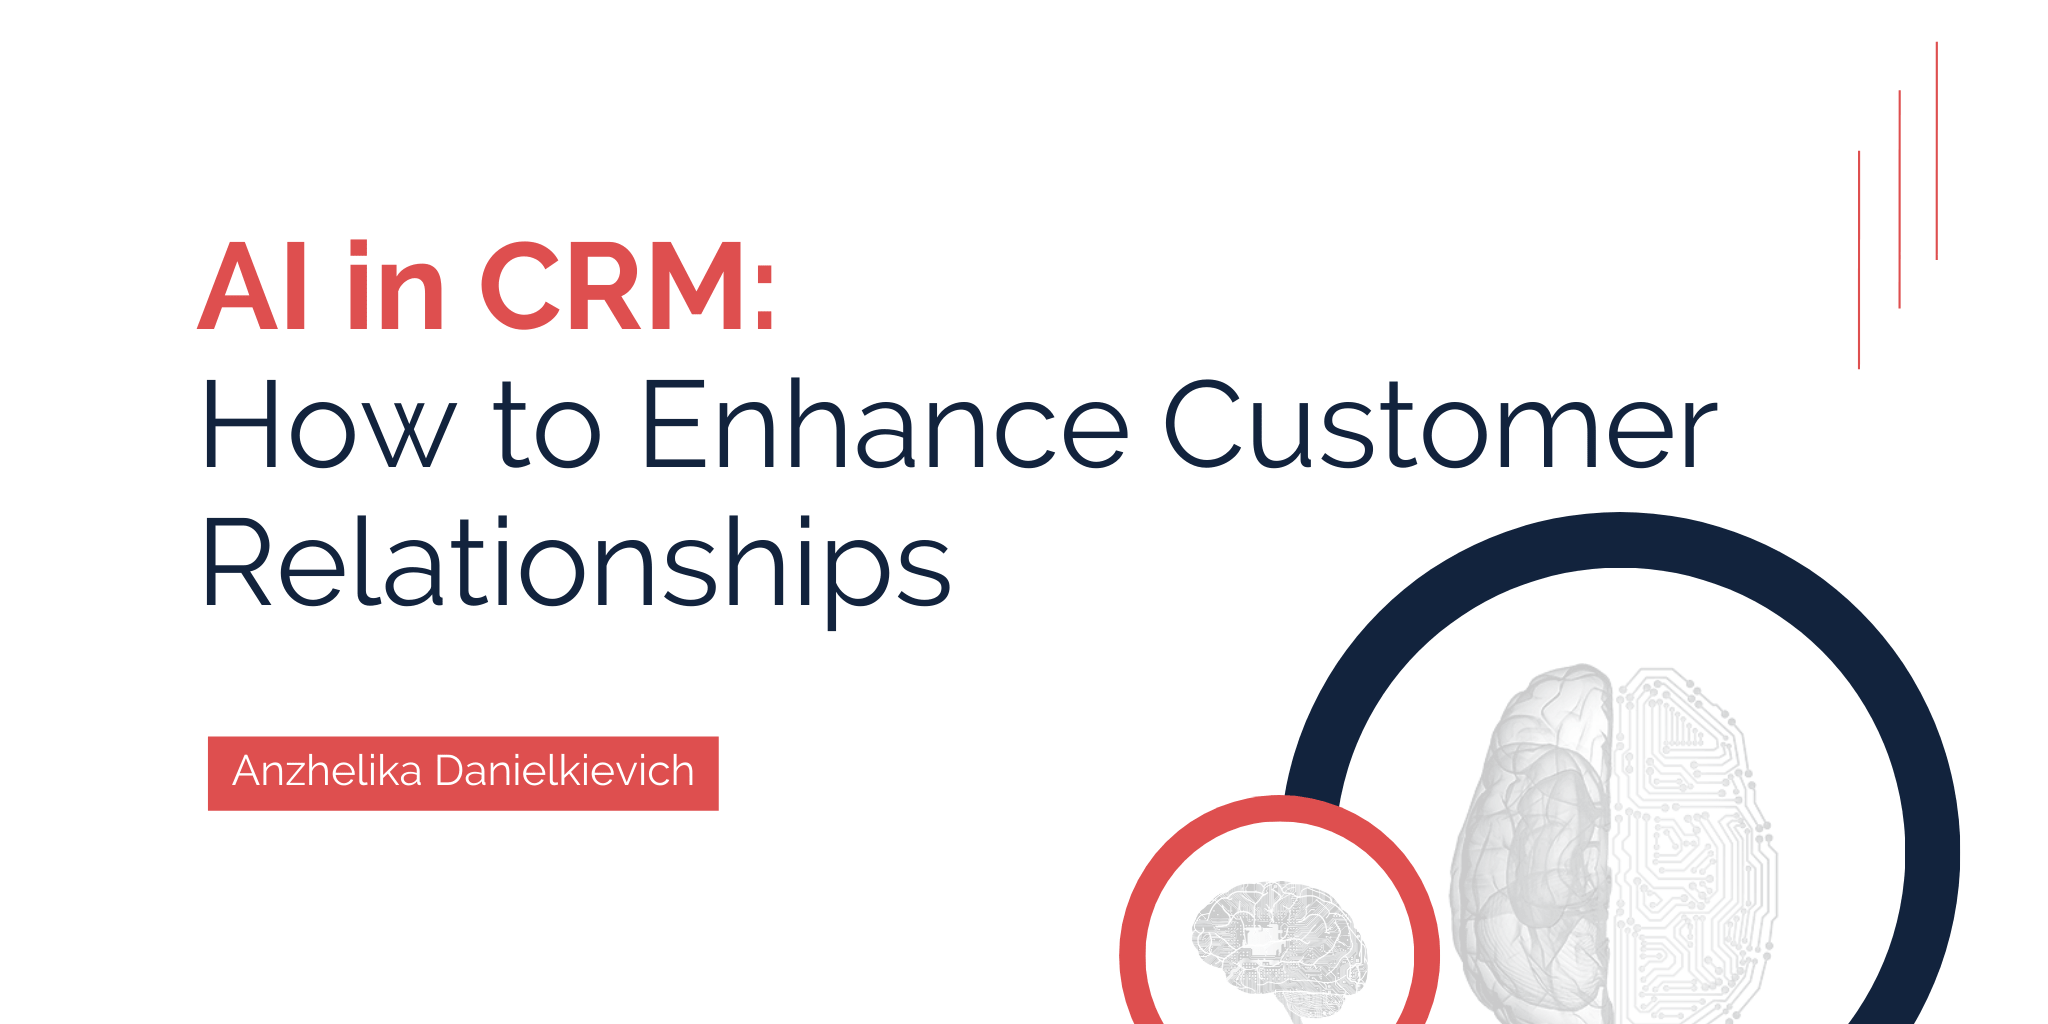 AI in CRM: How to Enhance Customer Relationships